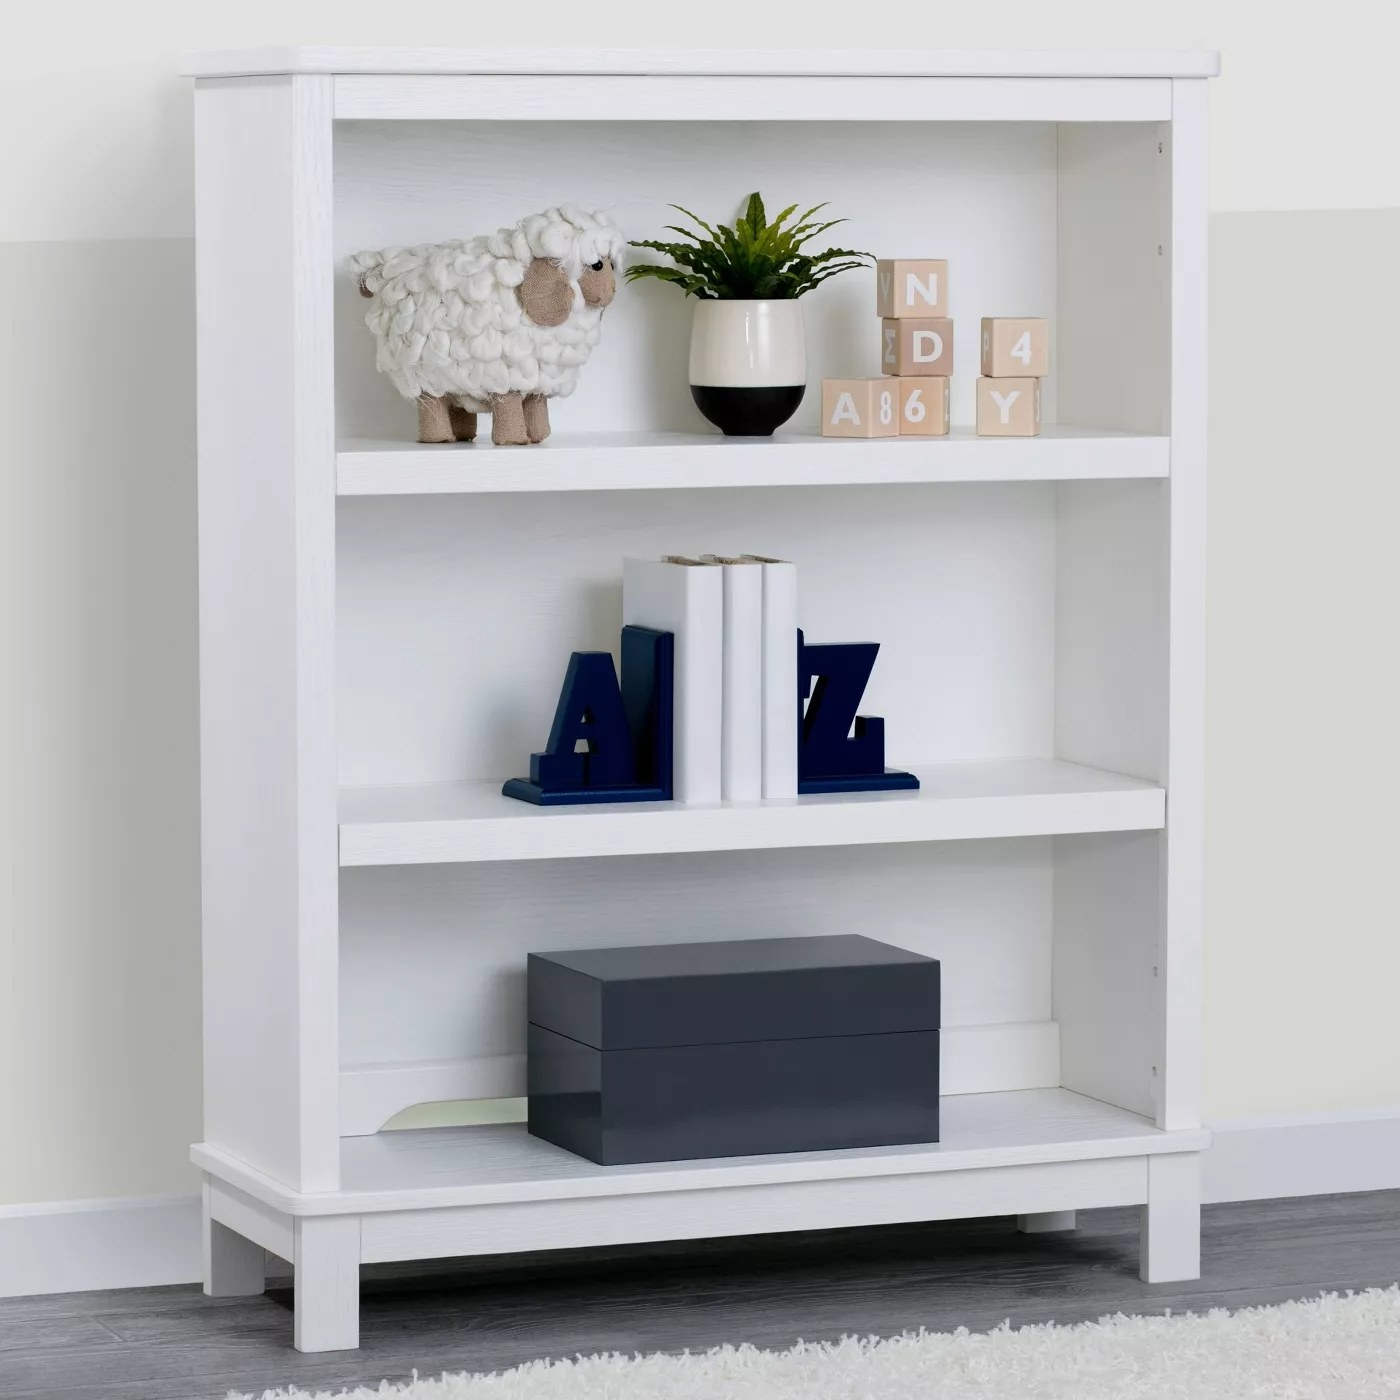 The white bookcase with three shelves in a nursery